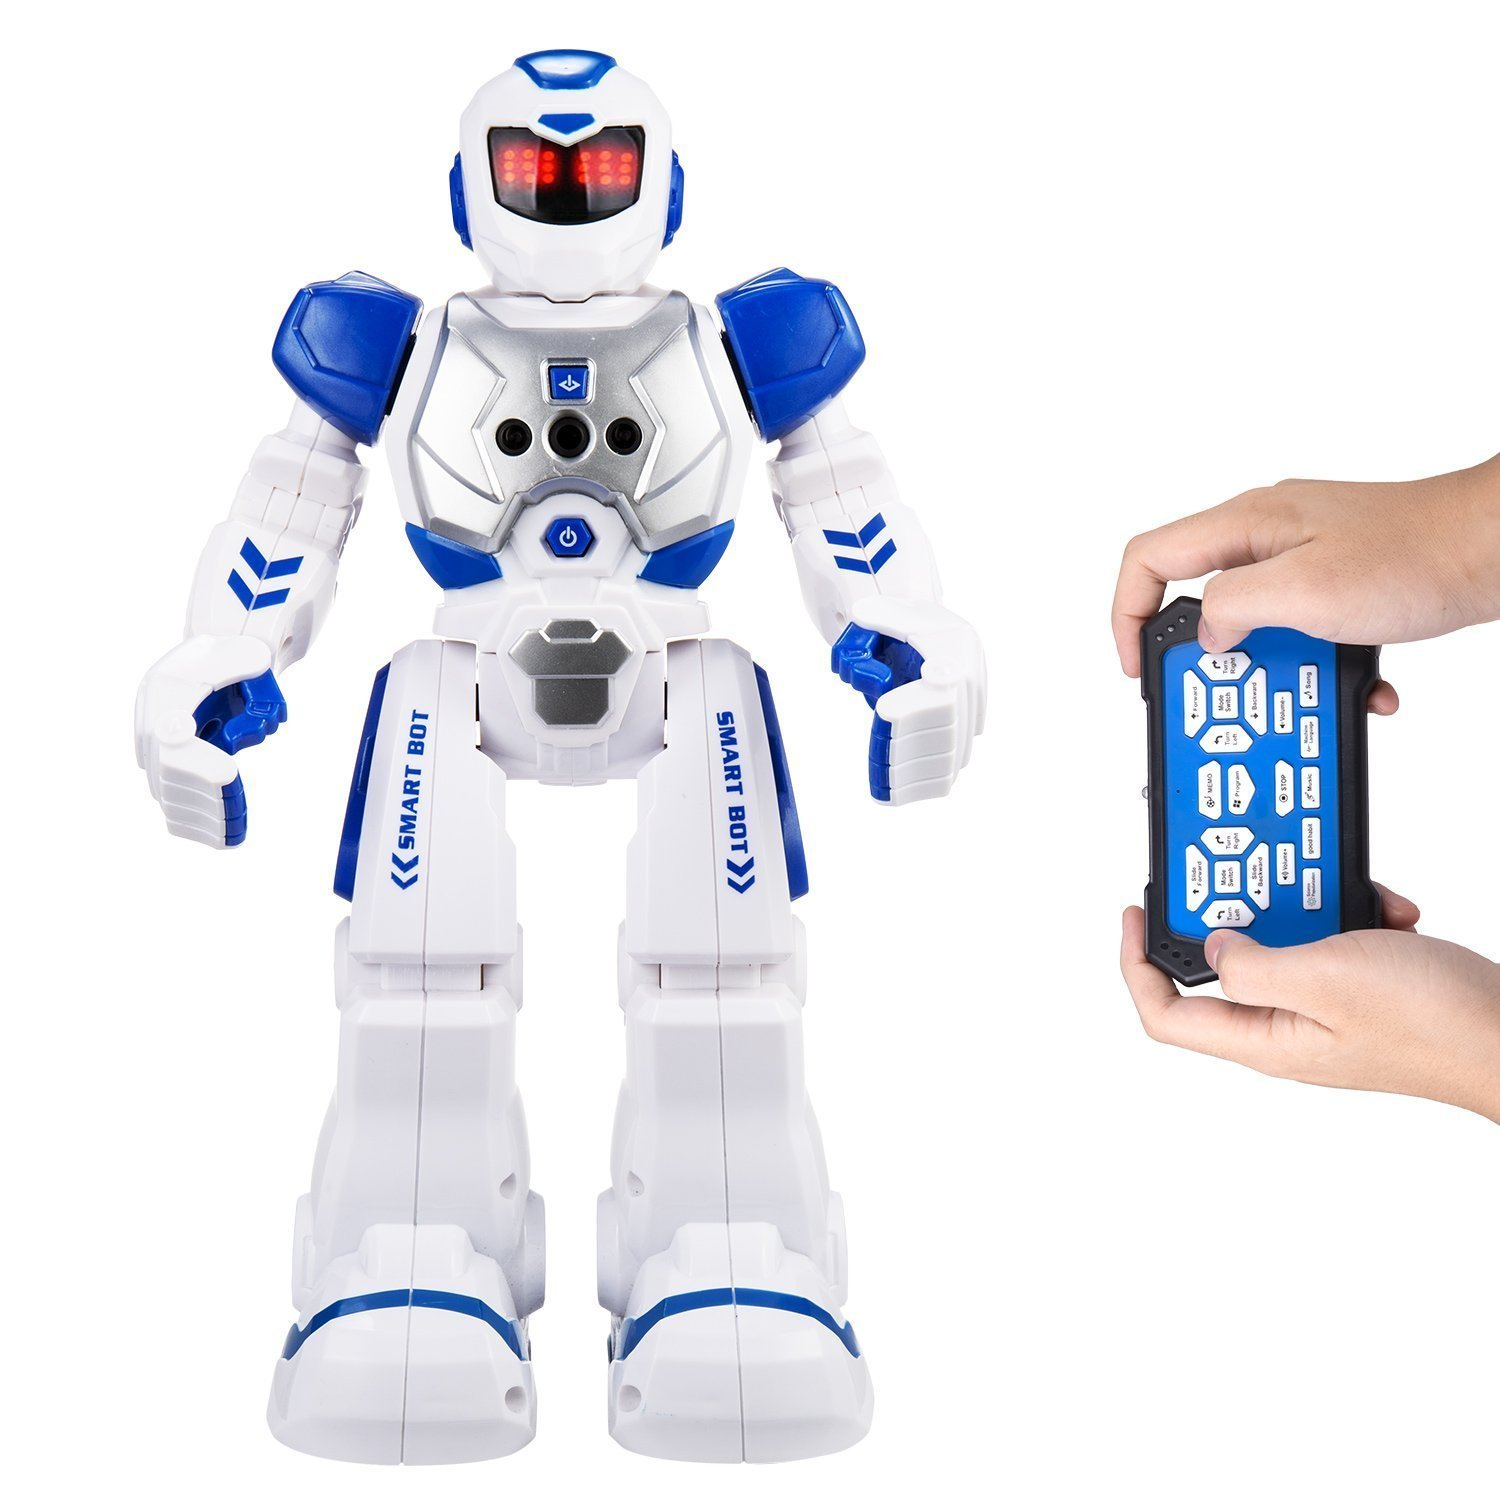 bluee Remote Control RC Robot, ECLEAR Programming Gesture Sensing Interactive Robotics Humanoid Robots Kit Toys Present for Kids Preschooler Entertainment